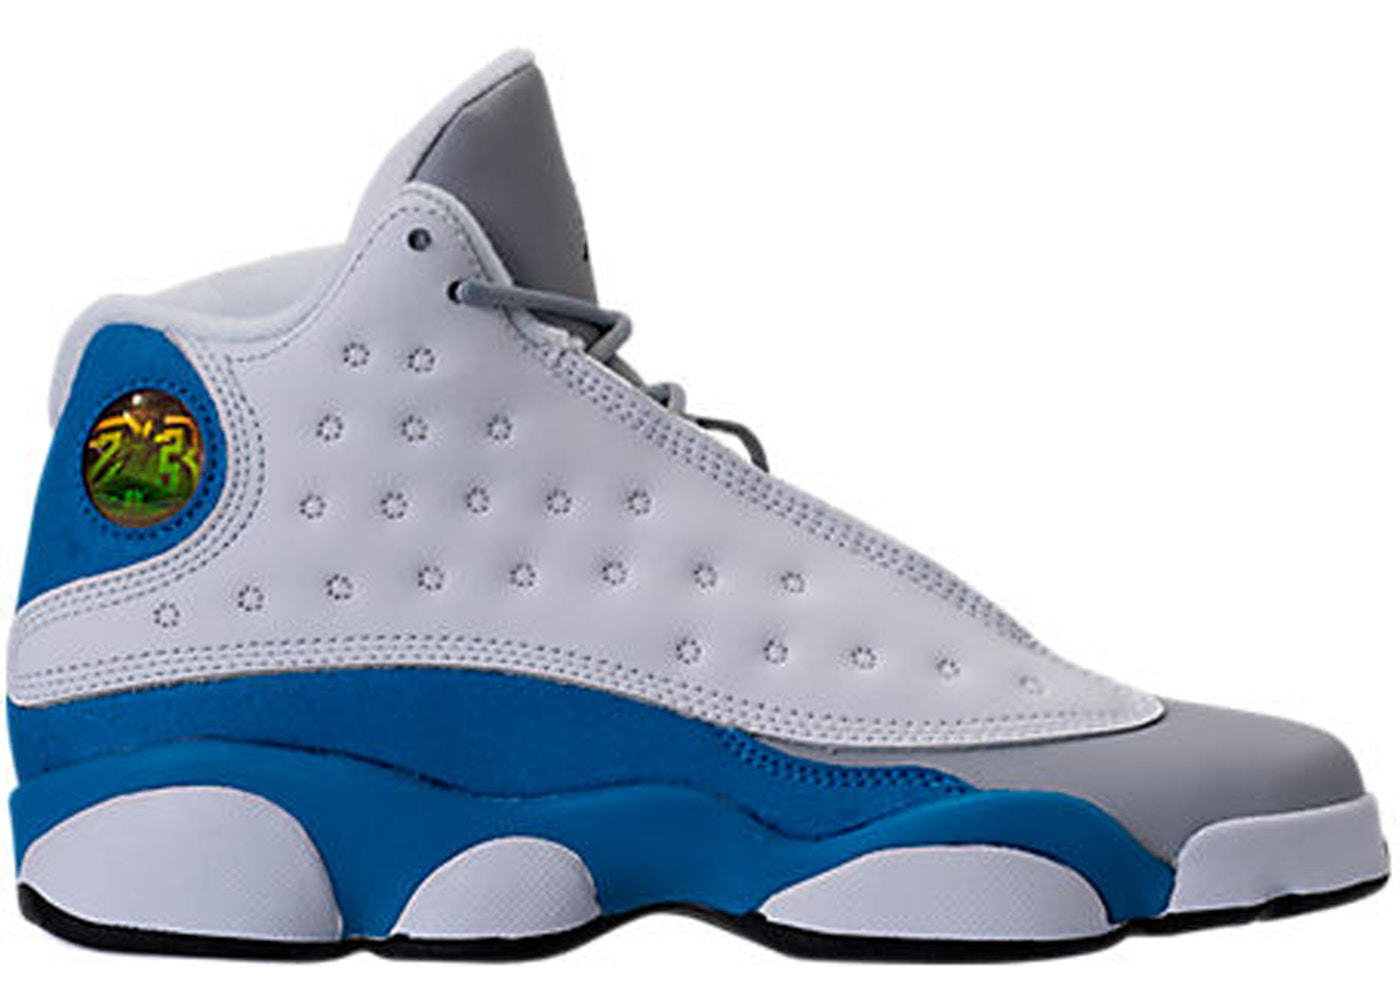 wholesale dealer d8224 ec1c9 Jordan 13 Retro White Italy Blue (GS)